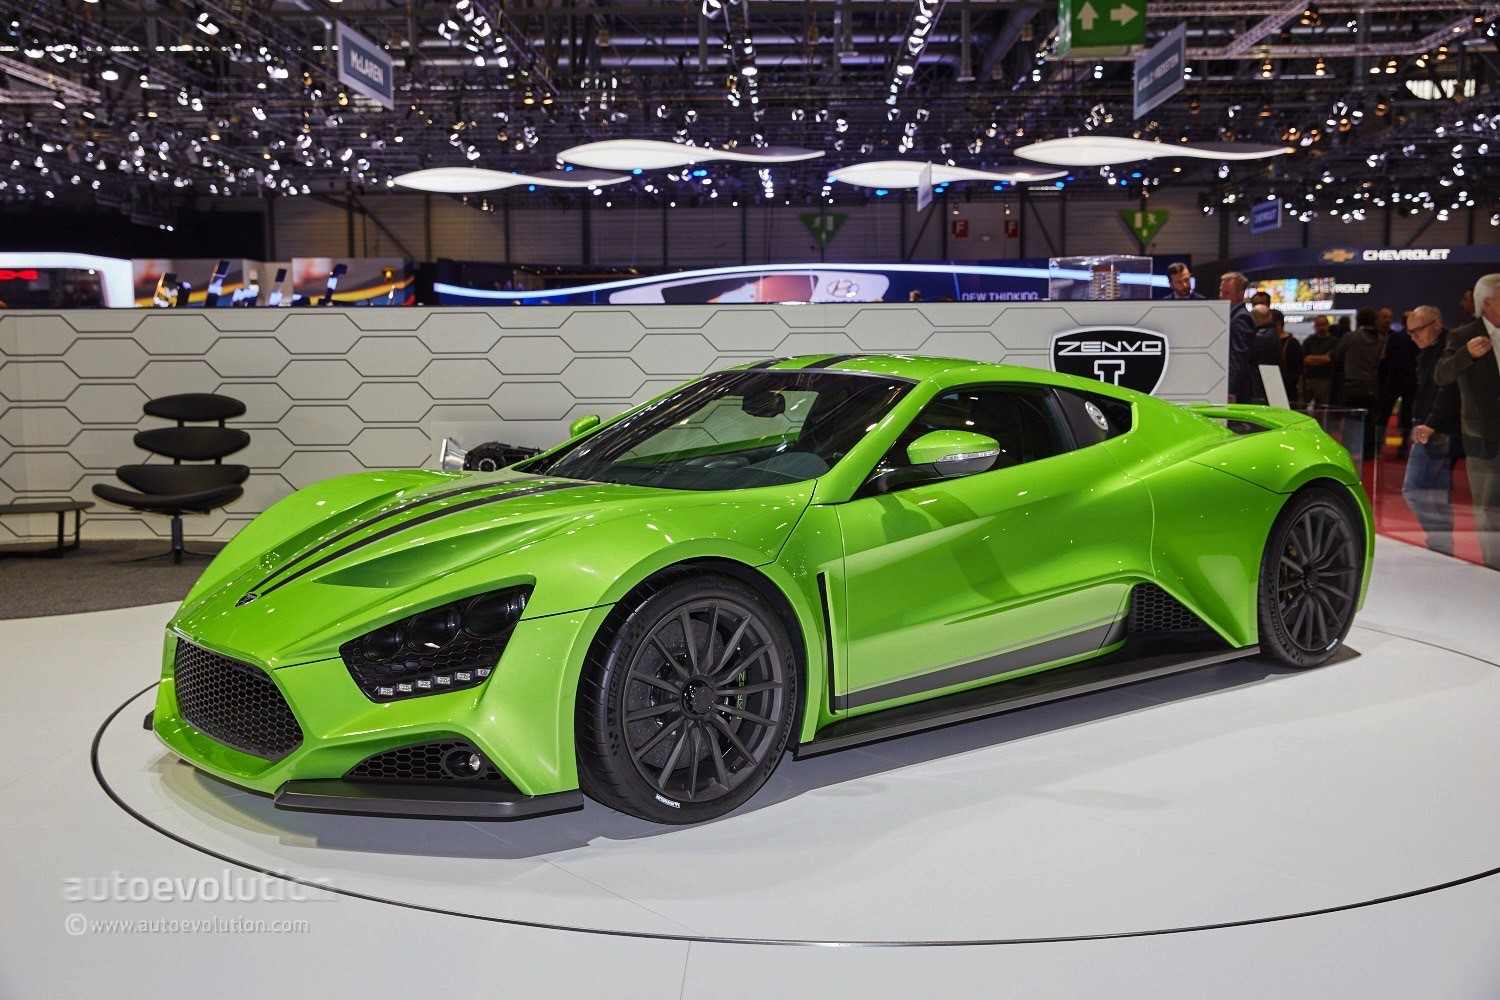 zenvo-st1-supercar-shows-up-in-geneva-with-new-transmission-live-photos_3.jpg